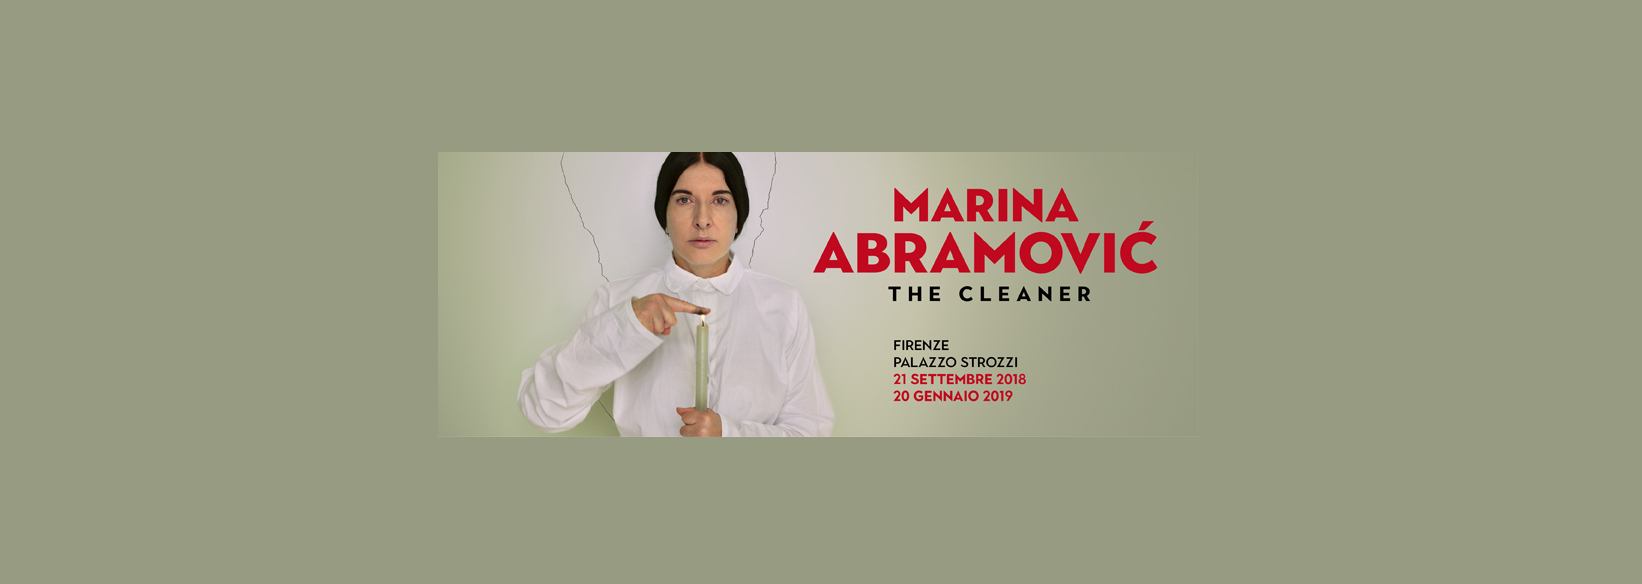 Mostra Marina Abramović. The Cleaner a Firenze a Palazzo Strozzi